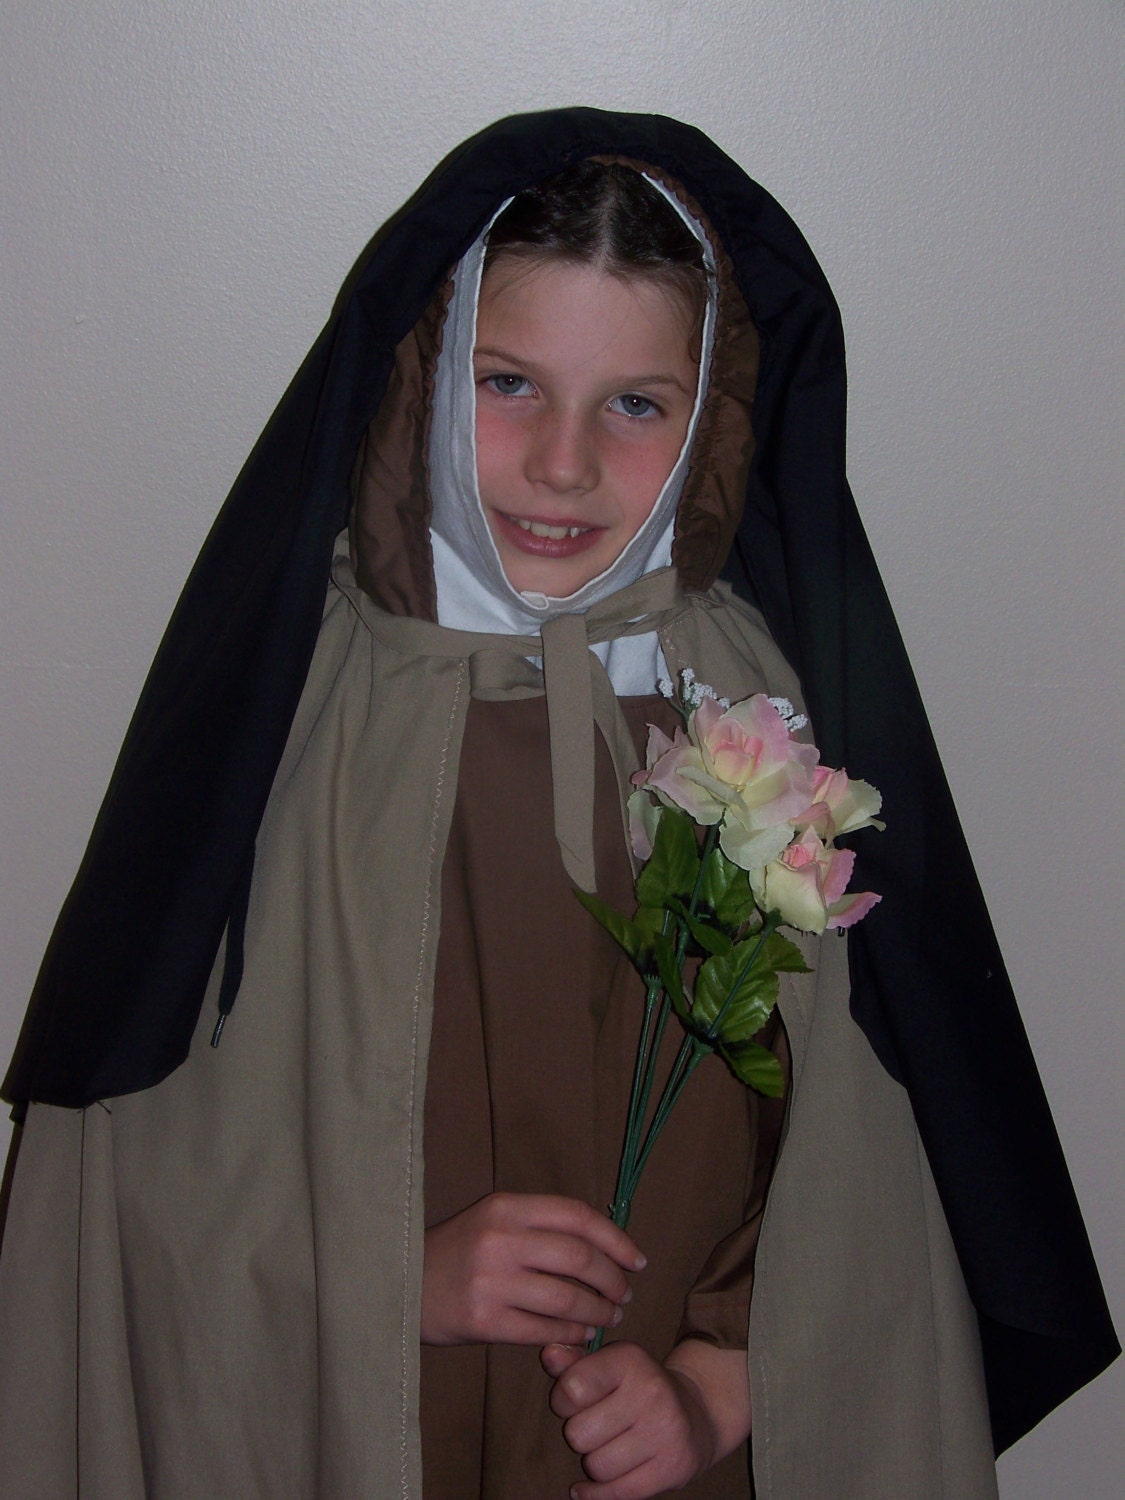 St Therese the Little Flower Costume for Girls by faithfulfindz